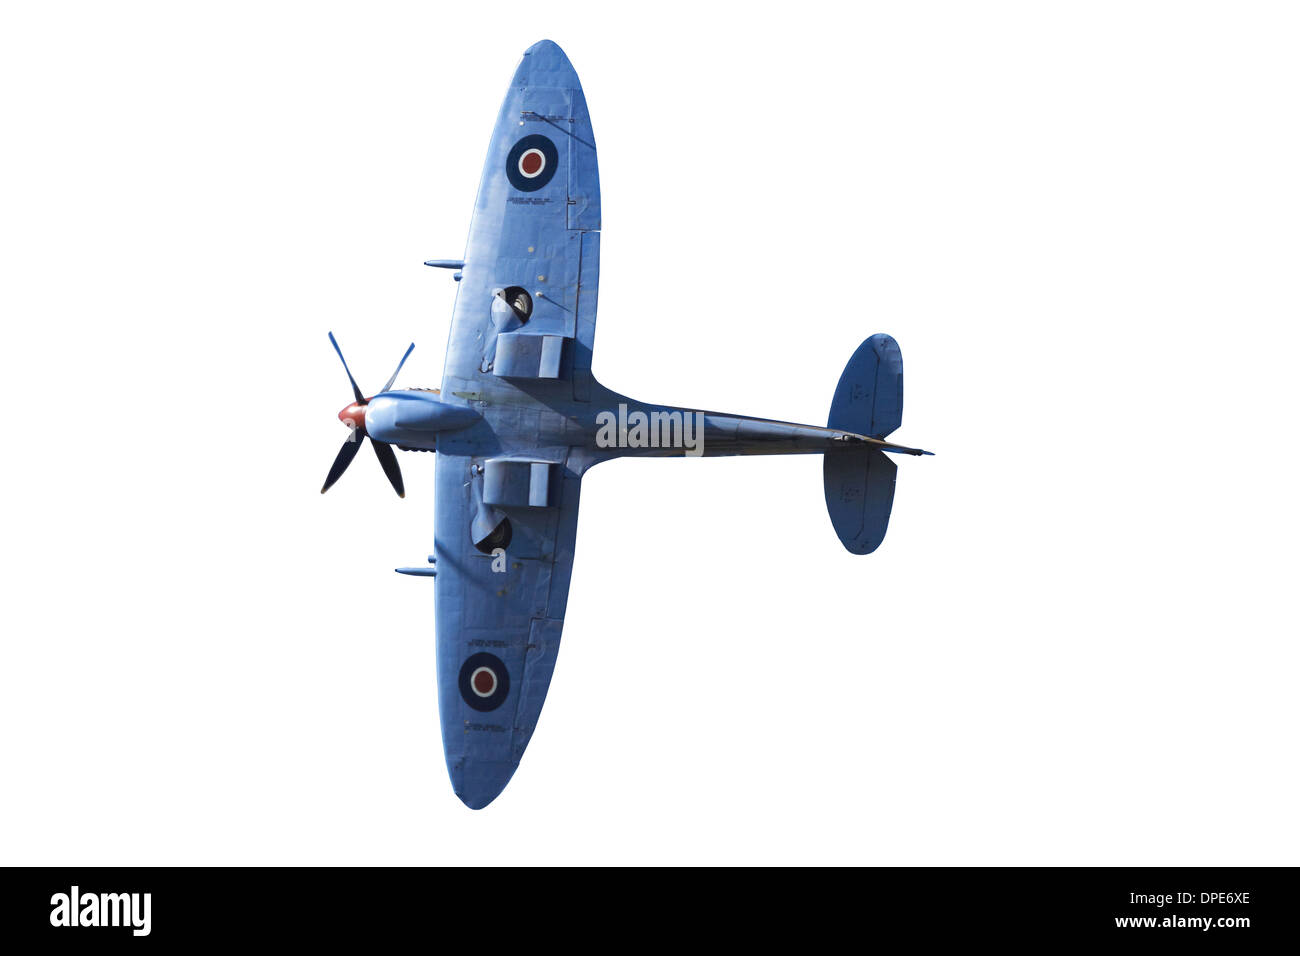 Cutout of Tandem Supermarine Spitfire Trainer - British and allied WWII Fighter Plane - Stock Image